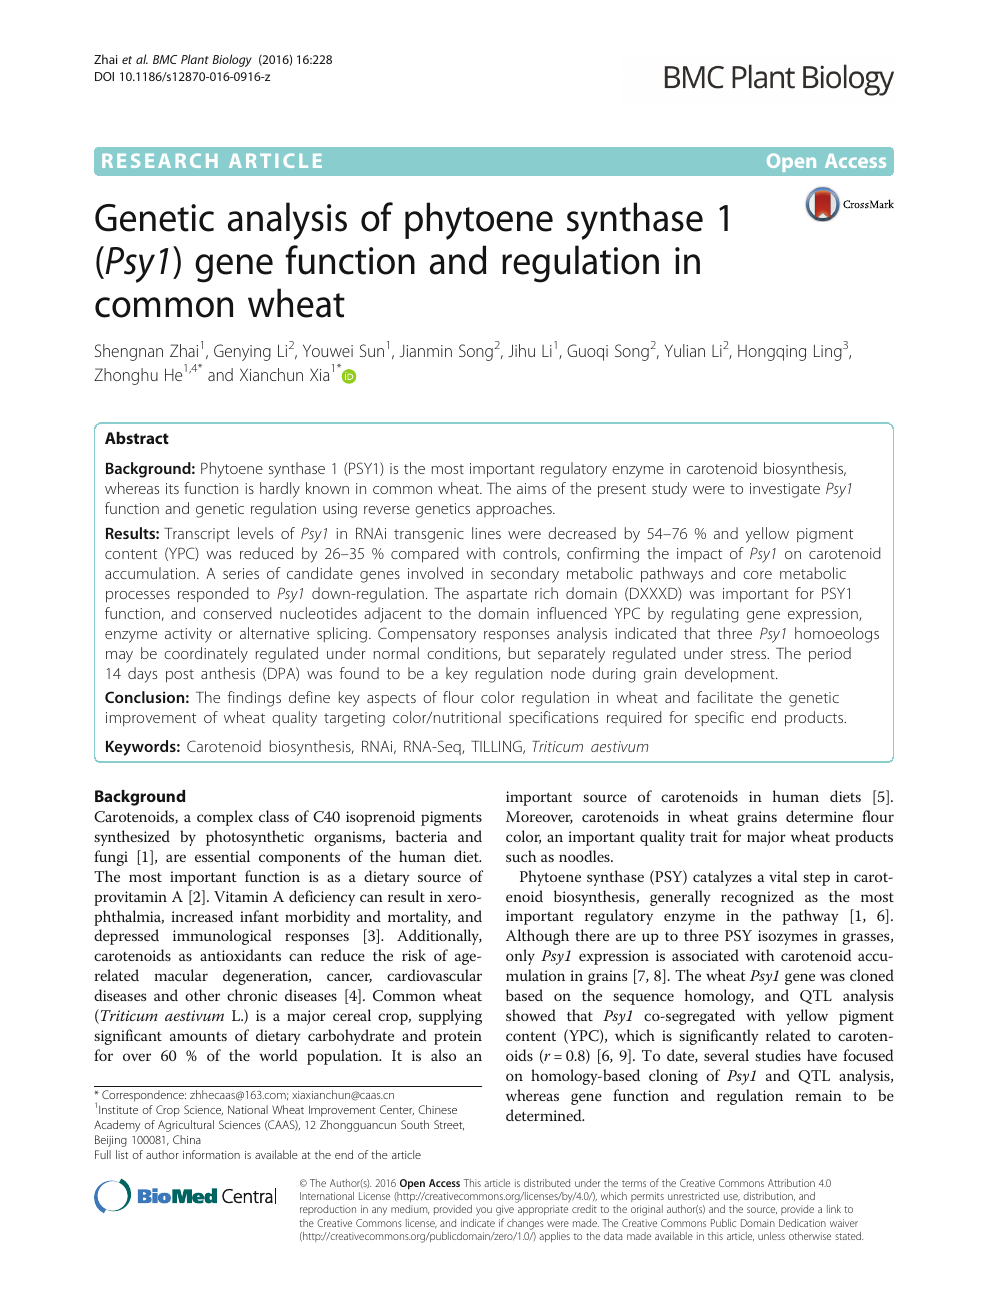 Genetic analysis of phytoene synthase 1 (Psy1) gene function and